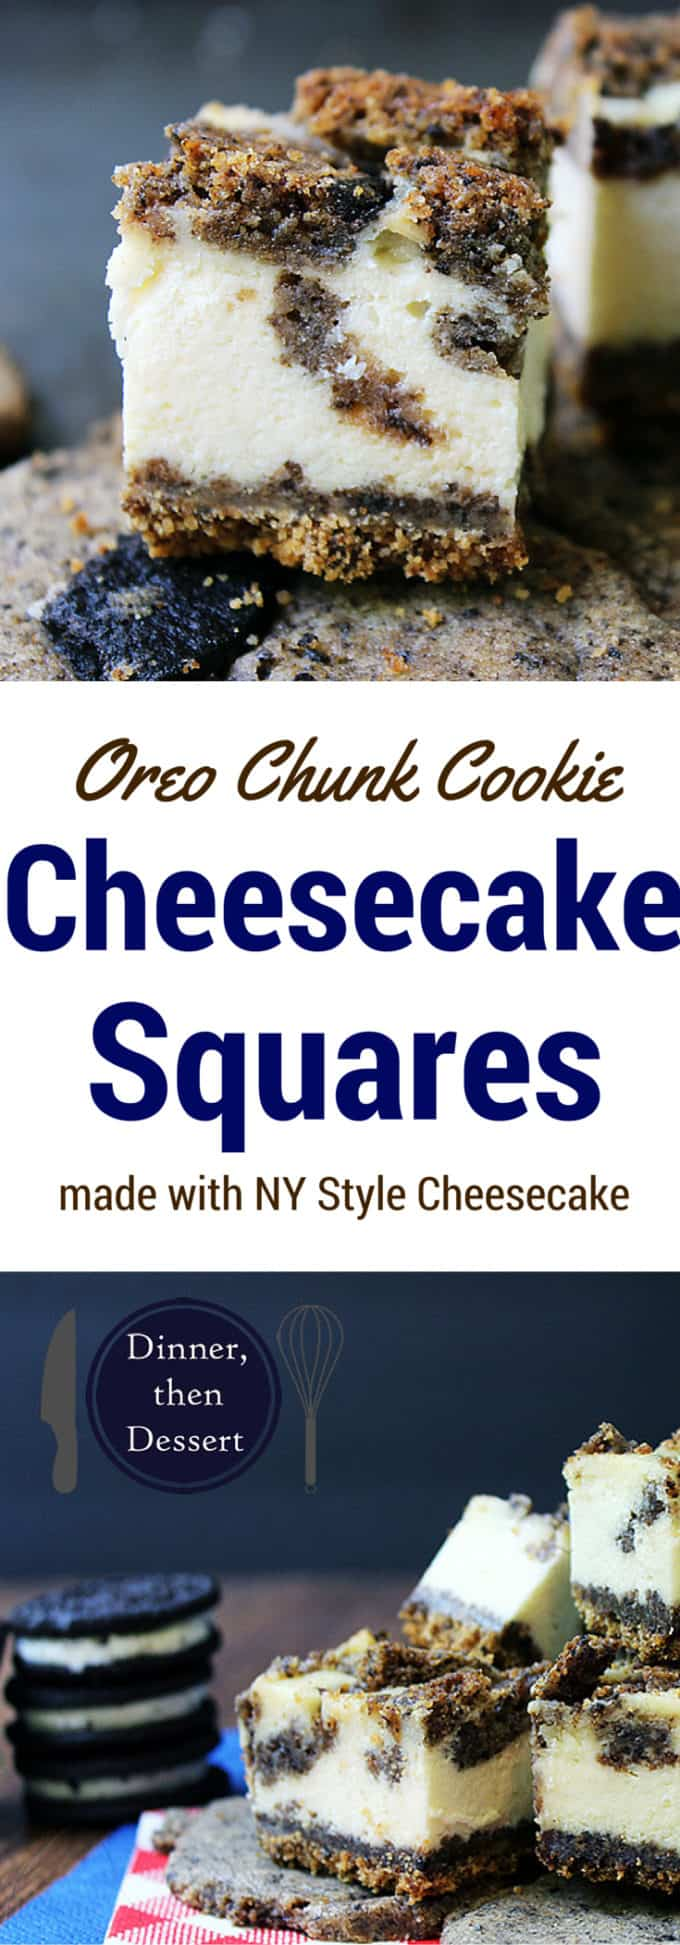 Made with Oreo Chunk Cookies. Buttery Rich cookies with NY Style Cheesecake filling. Heaven in a bite!